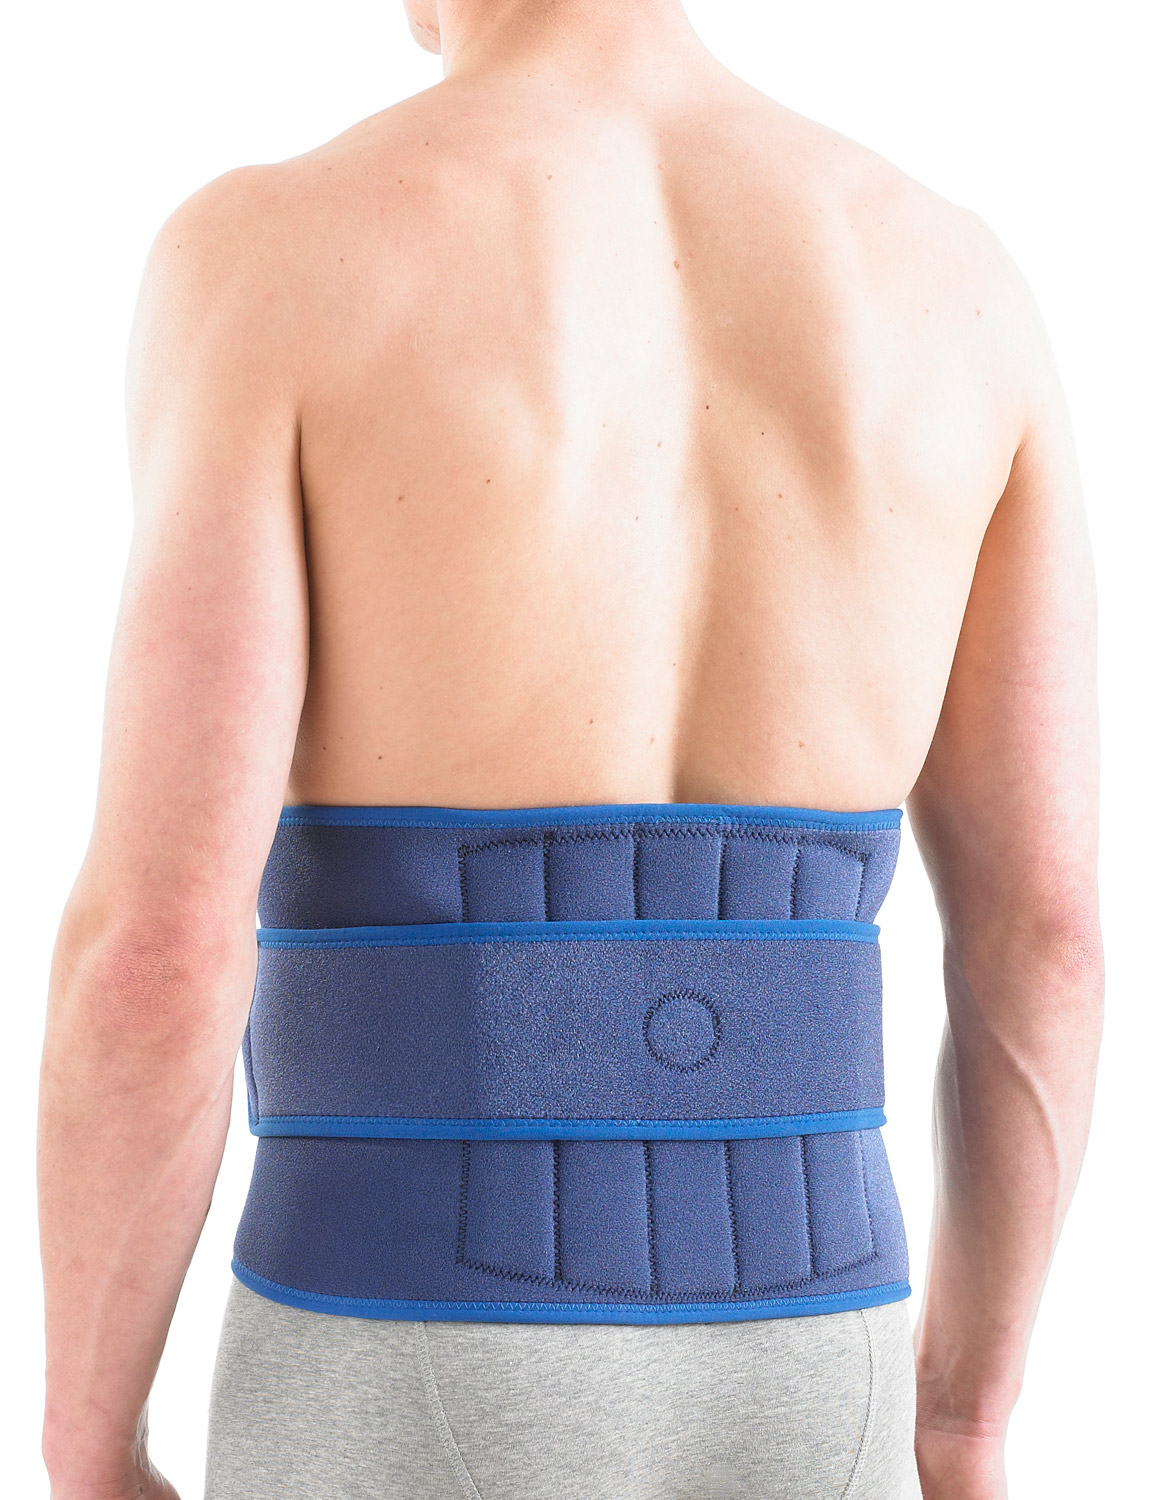 891 - BACK BRACE  The durable, flexible, heat therapeutic neoprene helps warm stiff, aching, tired muscles and arthritic joints. The variable compression fastener, stays and power straps help provide additional stabilization and support whilst ensuring a close, comfortable fit.